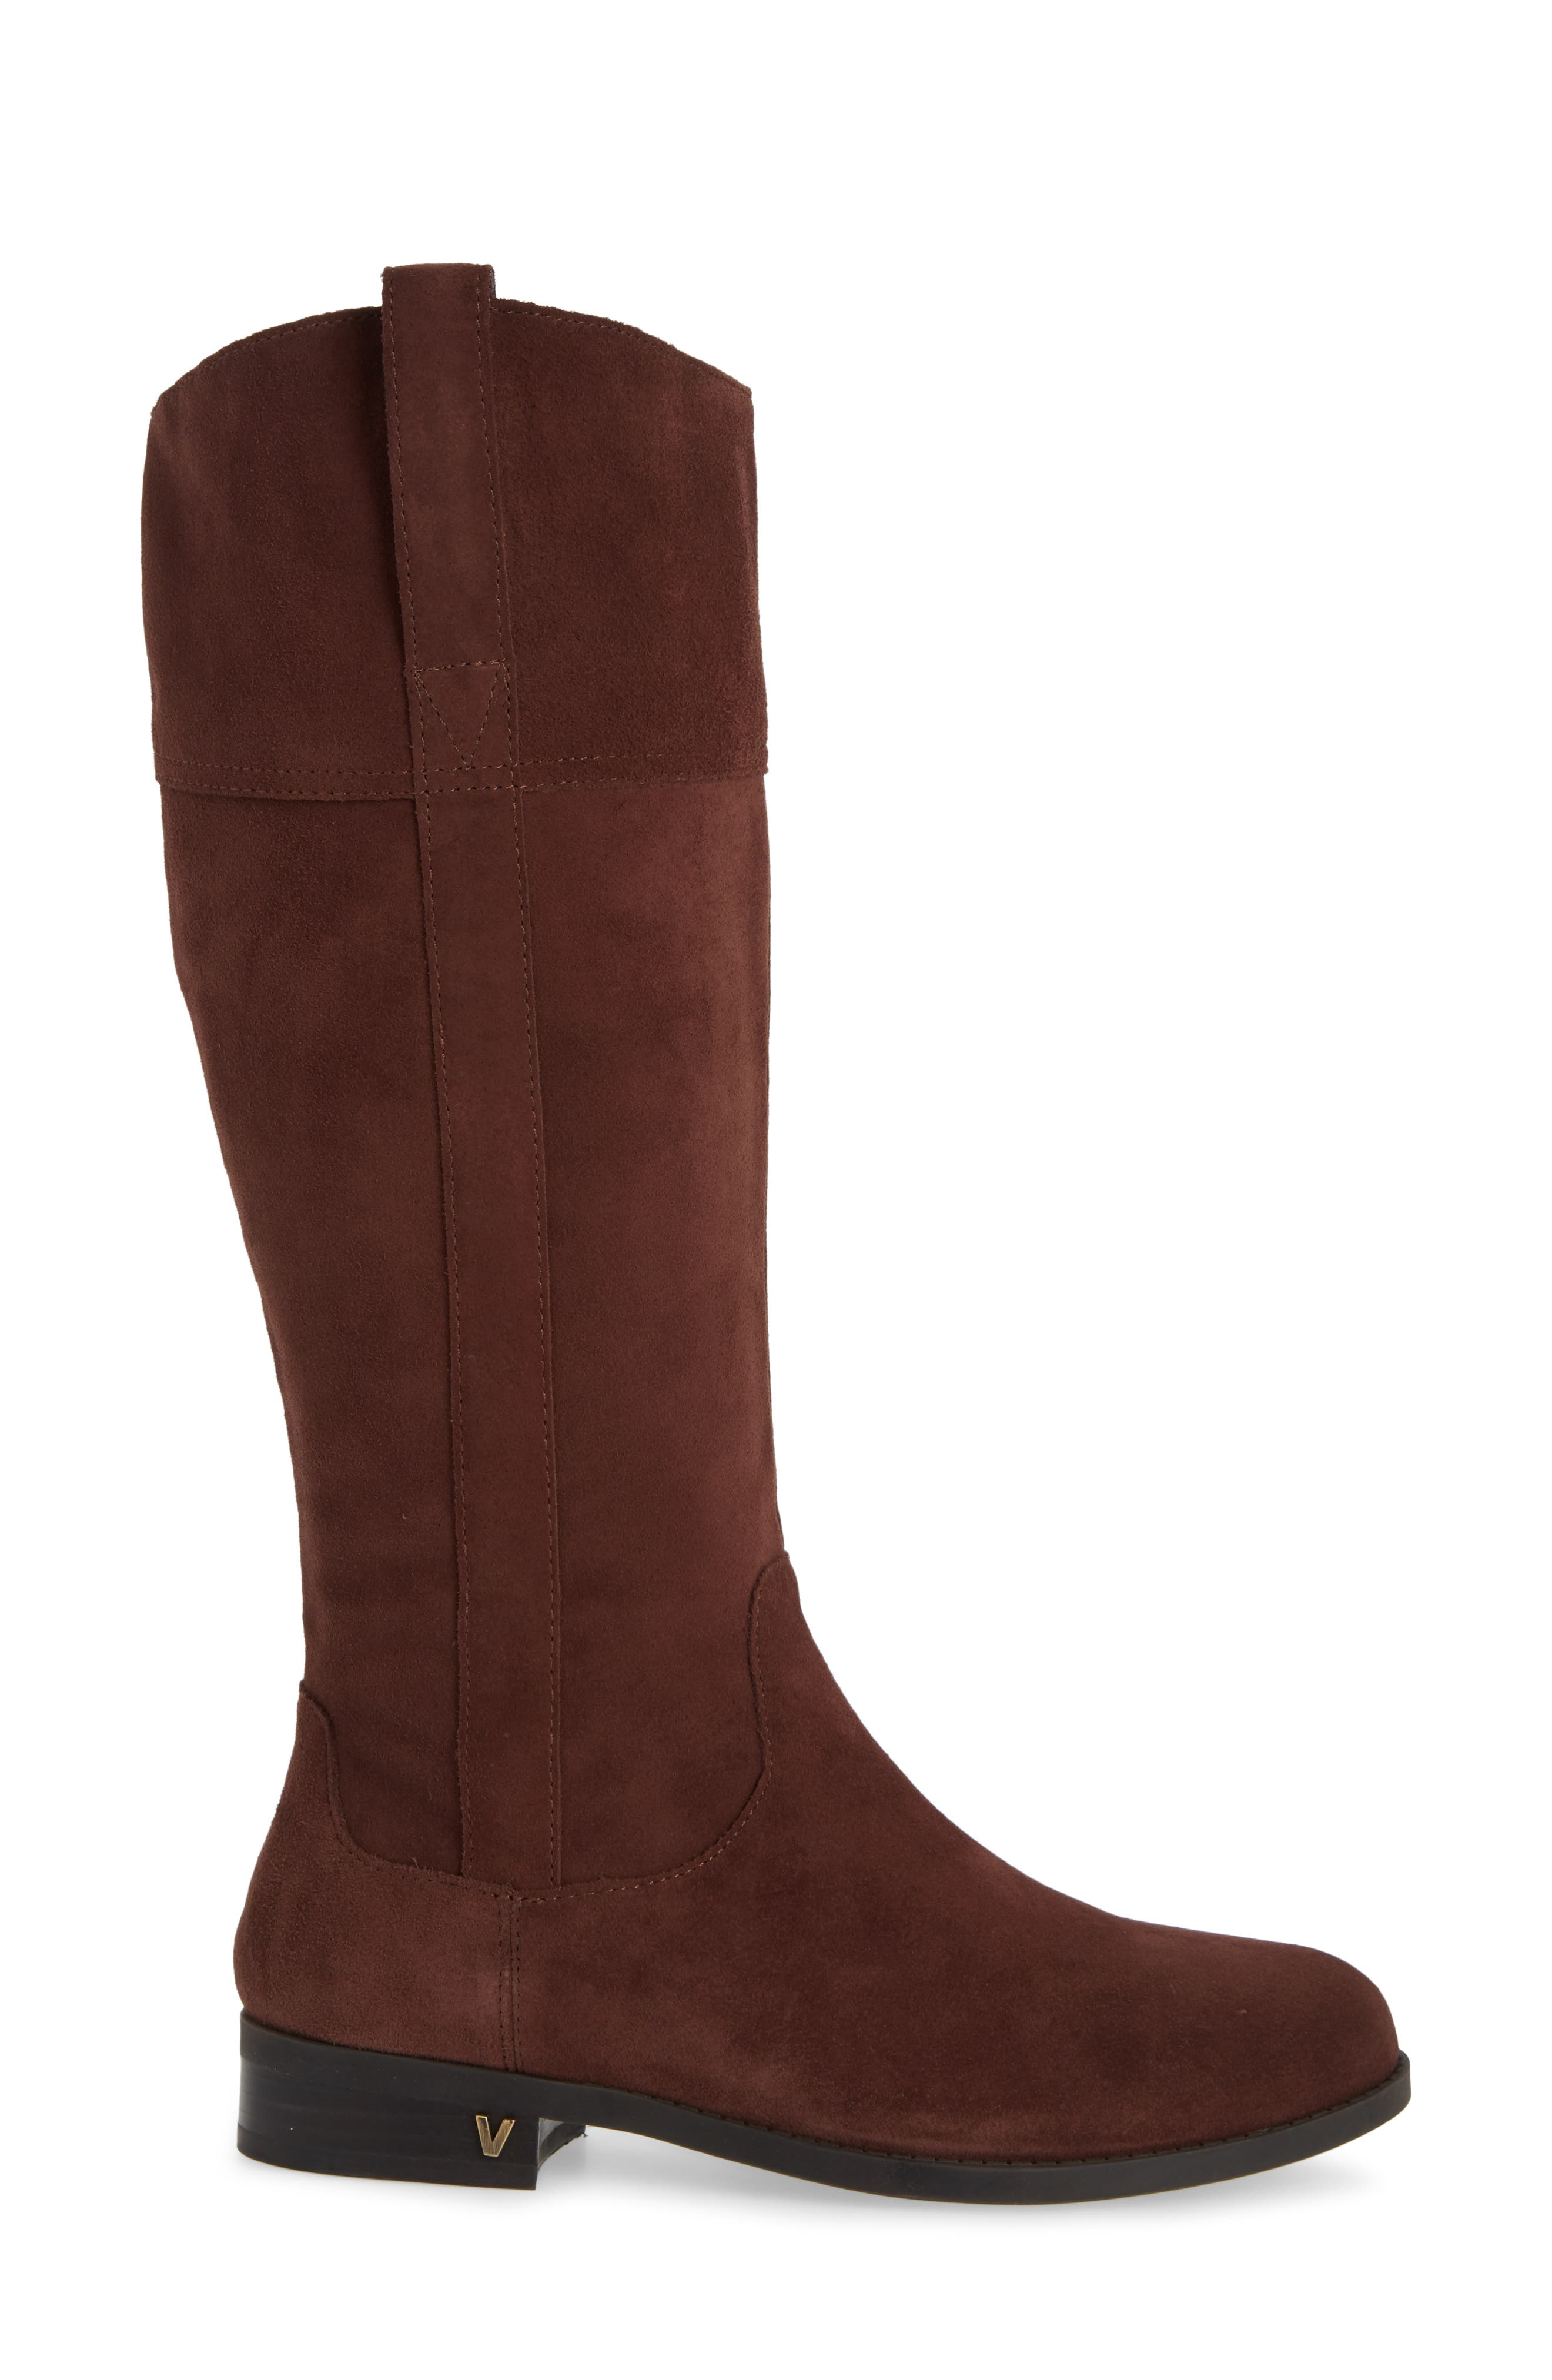 Downing Boot,                             Alternate thumbnail 3, color,                             CHOCOLATE SUEDE